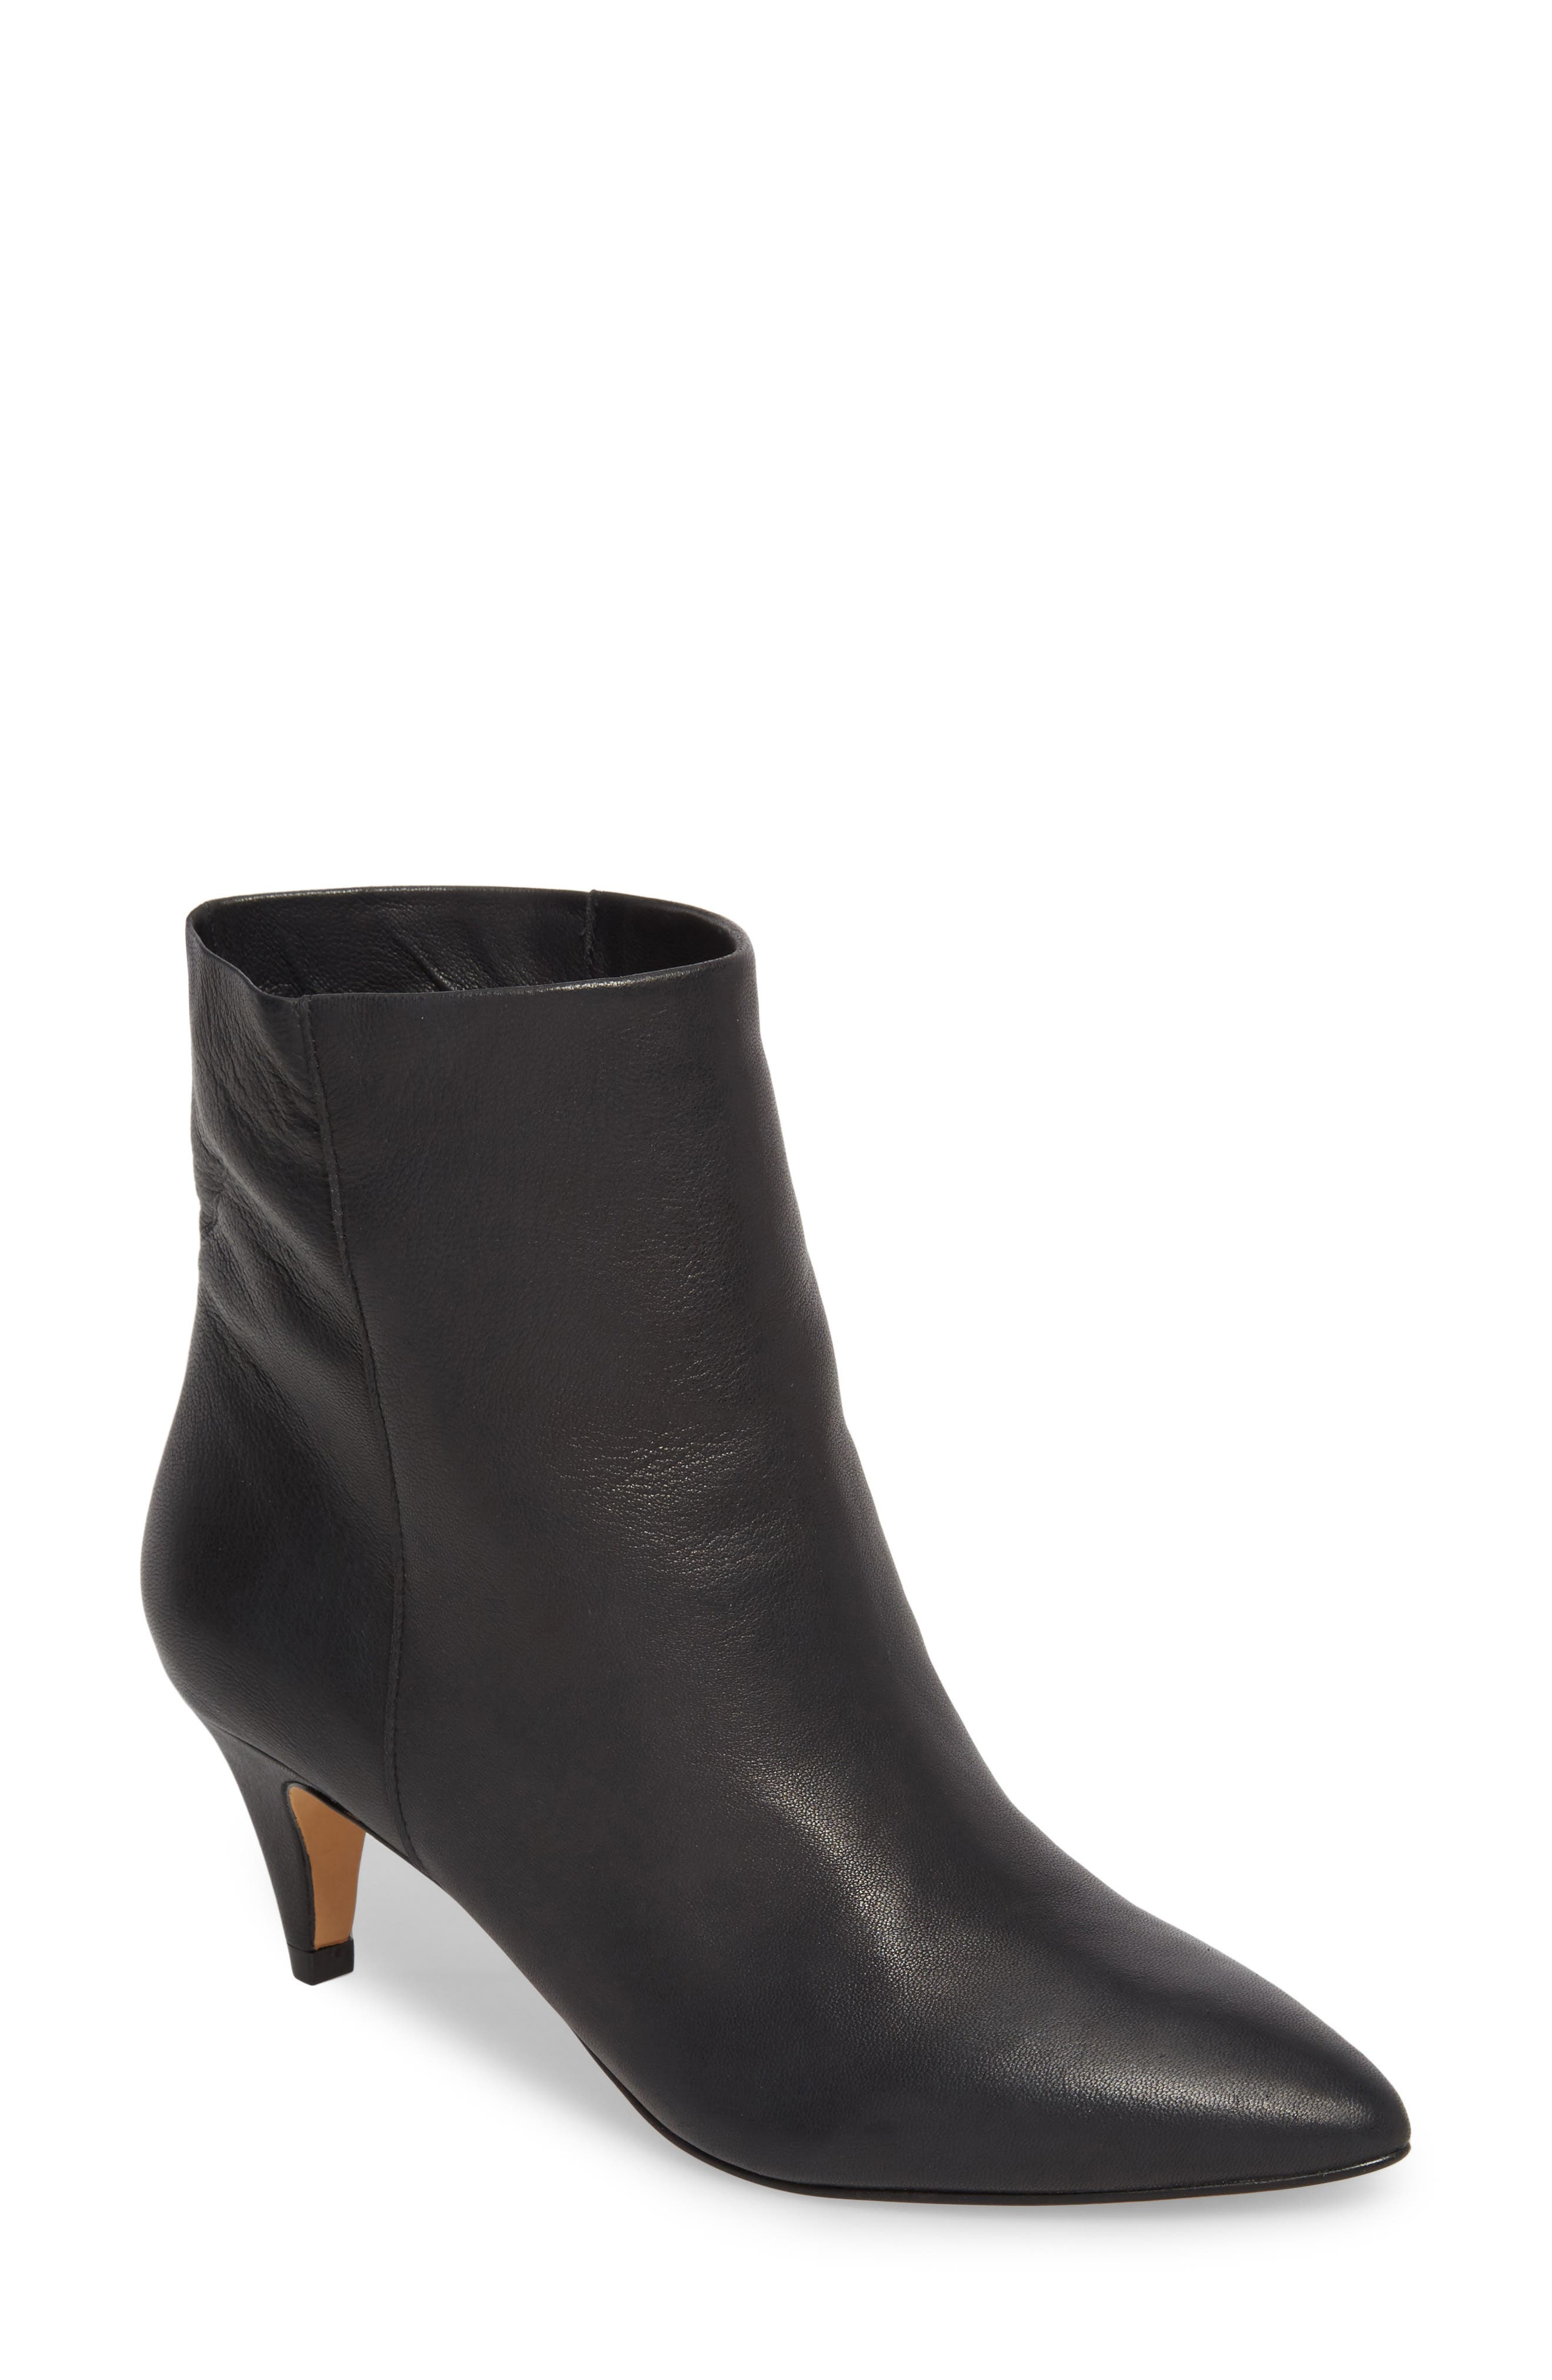 DOLCE VITA Dee Bootie, Main, color, 001